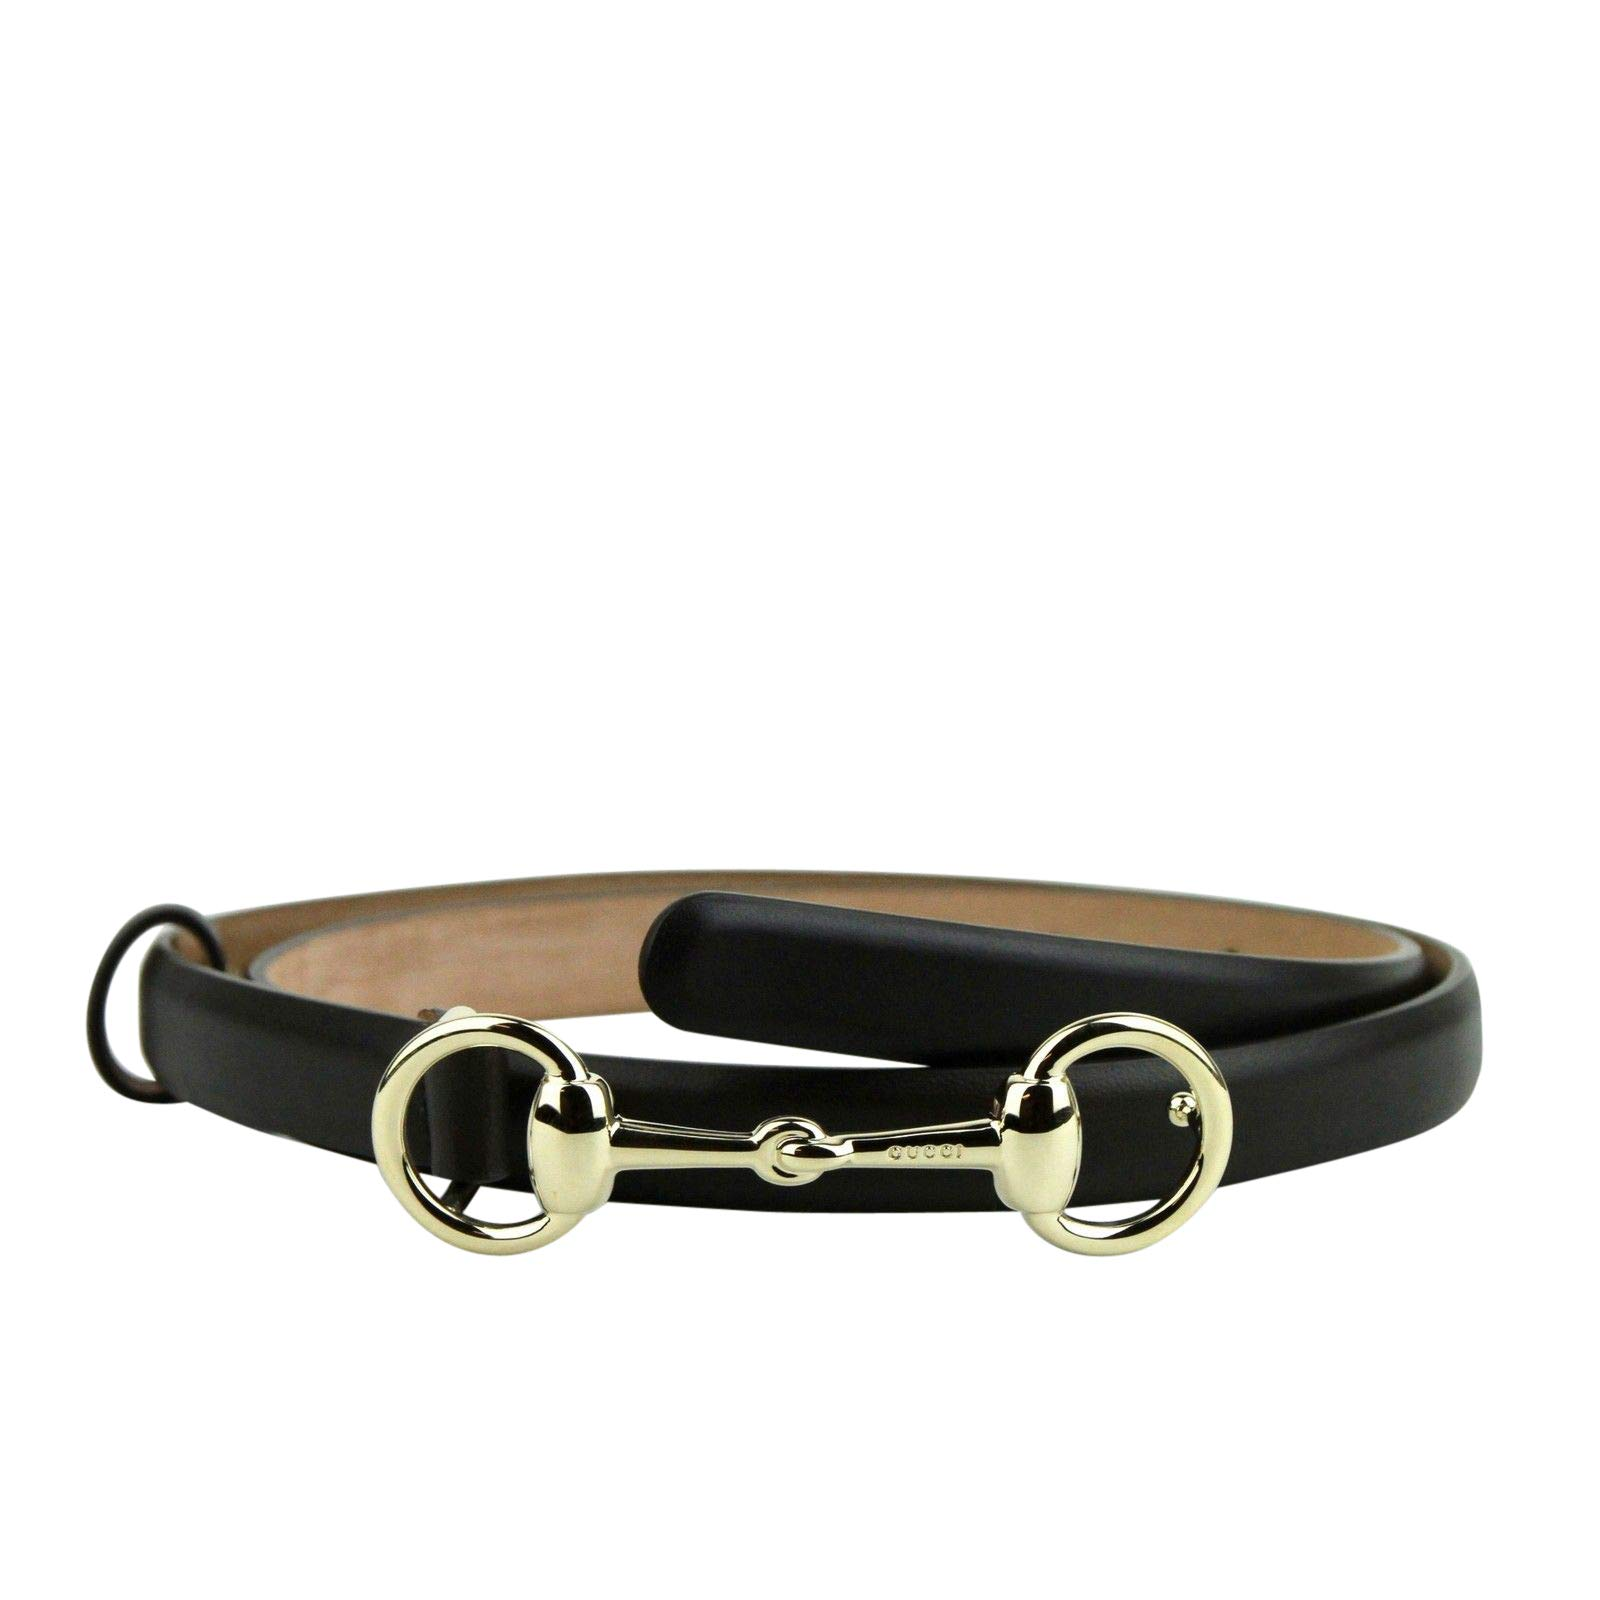 Gucci Women's Gold Horsebit Buckle Cocoa Brown Leather Skinny Belt 282349 2140 (105/42)